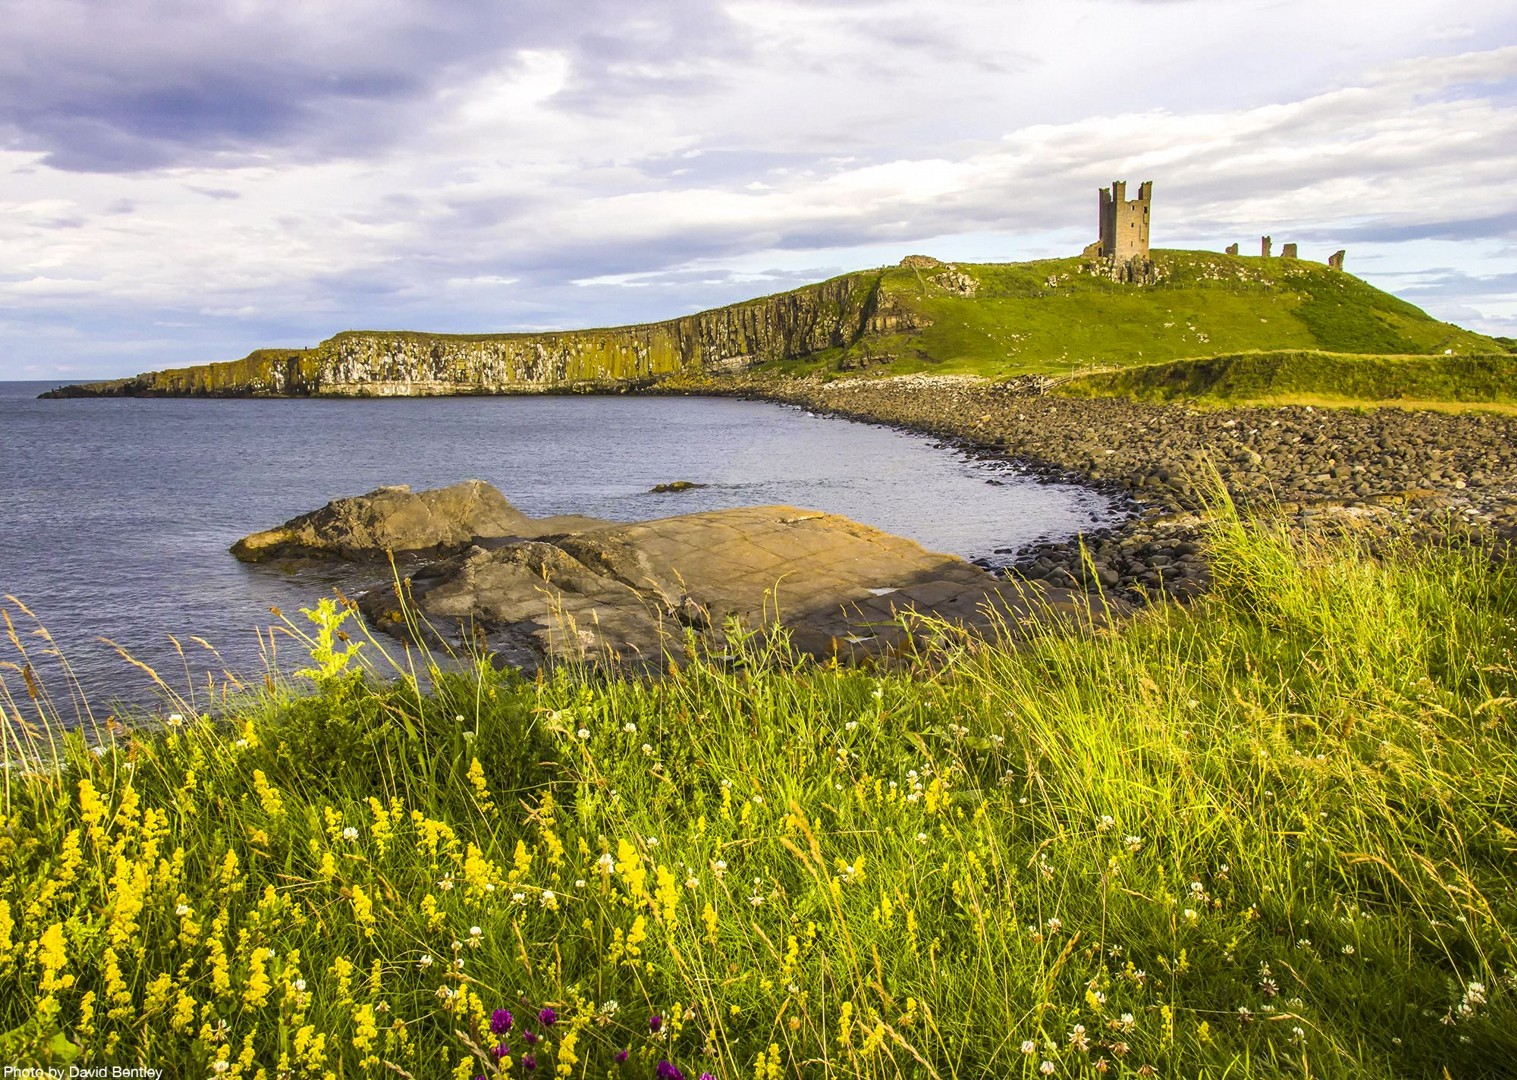 castles-self-guided-2-day-northumberland-coast-holiday-cycling-tour.jpg - UK - Coast and Castles - 4 Days Cycling - Self-Guided Leisure Cycling Holiday - Leisure Cycling